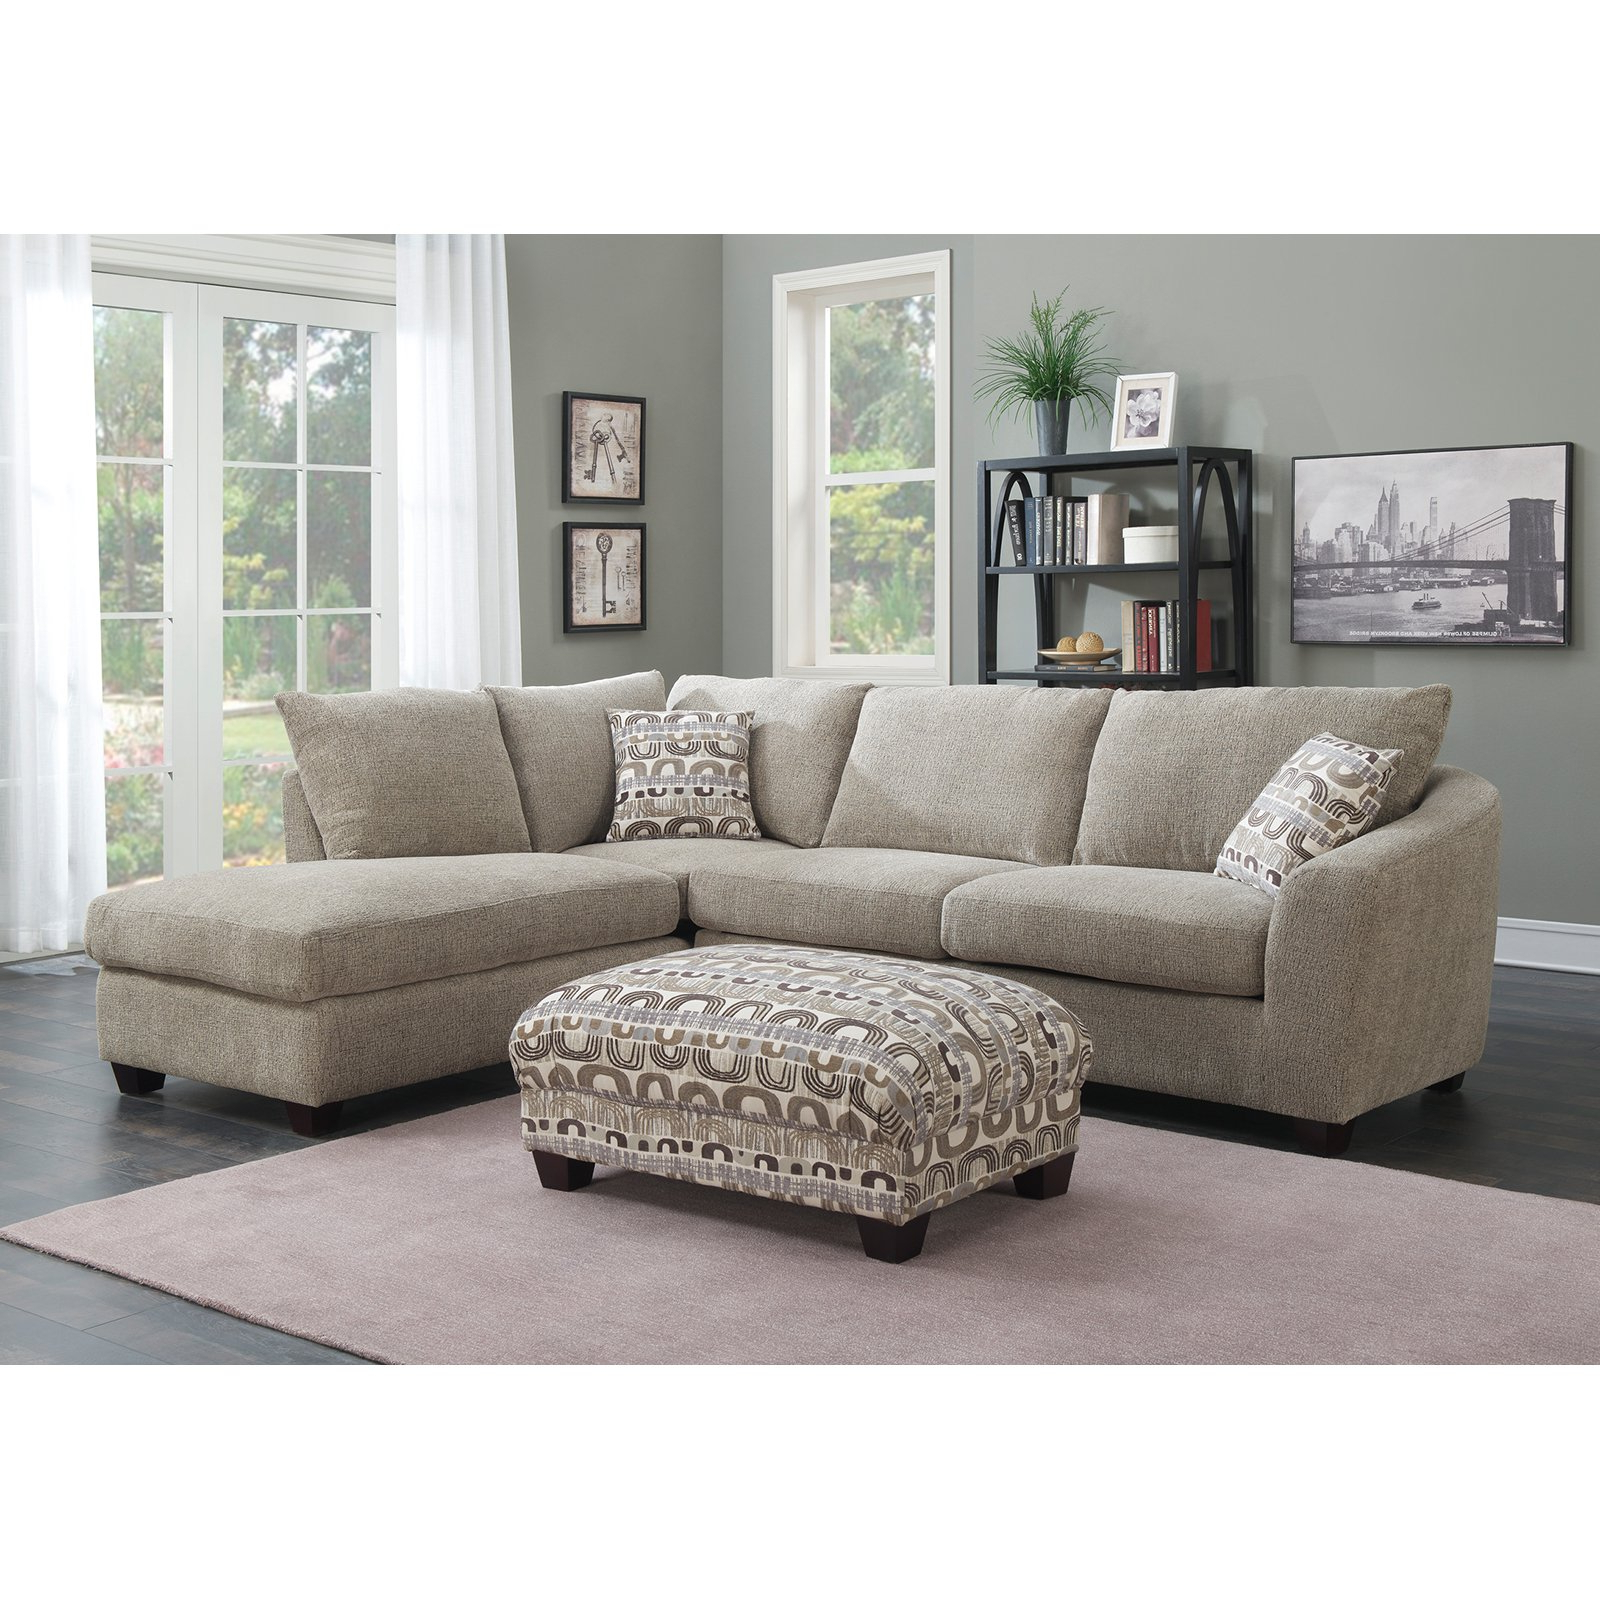 Trendy Delano 2 Piece Sectionals With Laf Oversized Chaise Pertaining To 2 Piece Sectional With Chaise – Tidex (View 6 of 20)